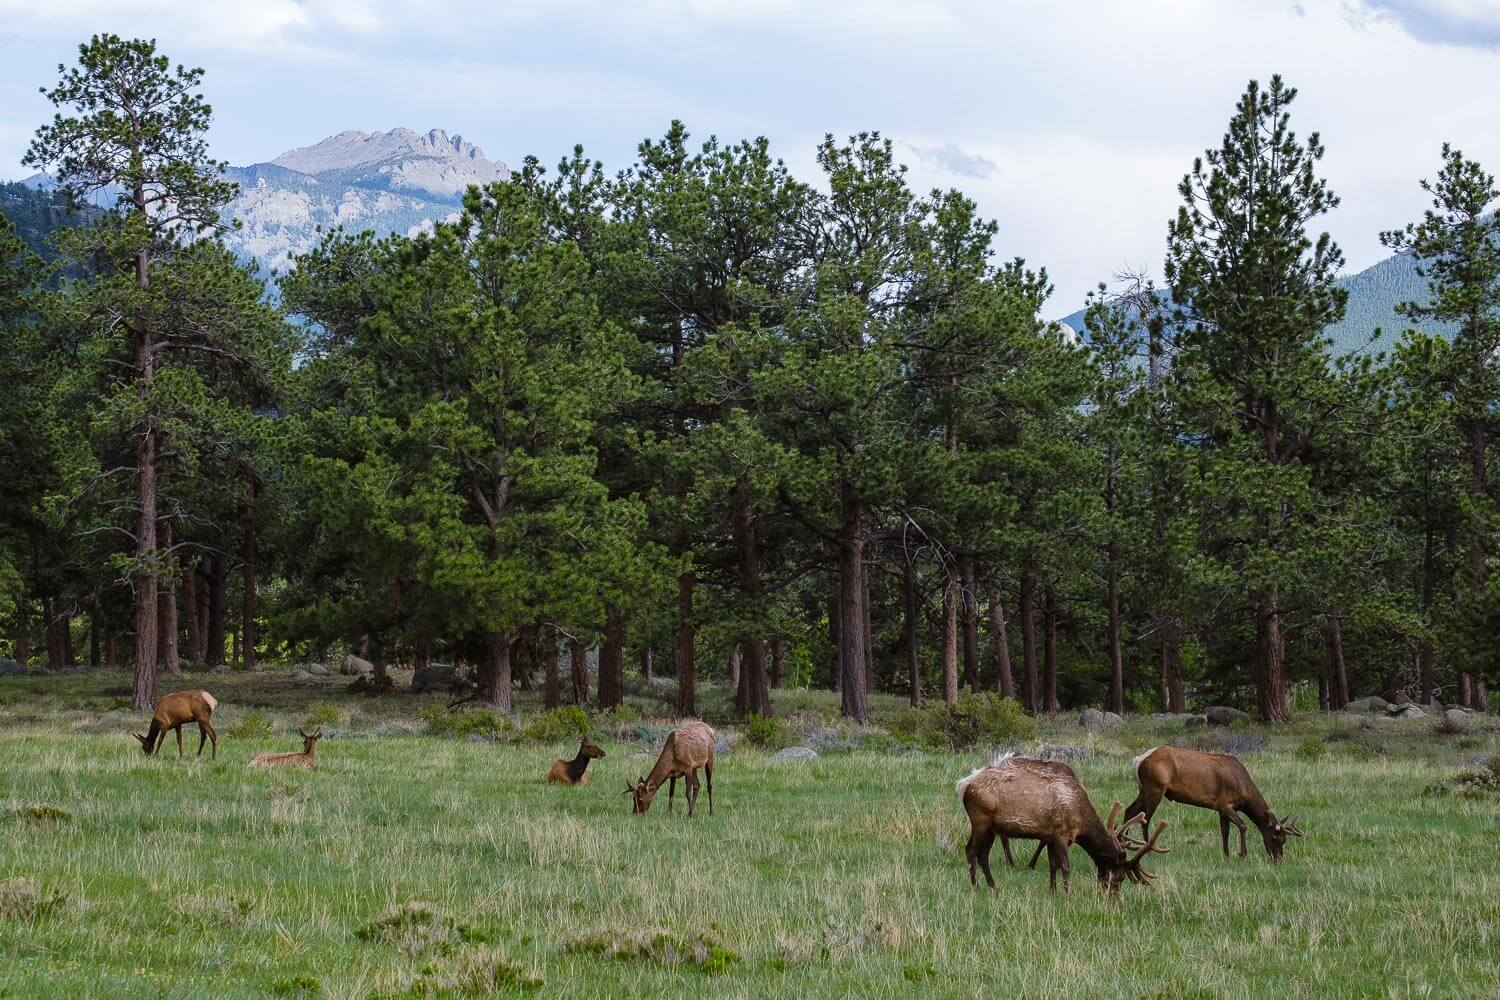 """Deer grazing, RMNP. Travel photography and guide by © Natasha Lequepeys for """"And Then I Met Yoko"""". #colorado #usa  #rockymountainnationalpark #landscapephotography #coloradoitinerary #fujifilm"""